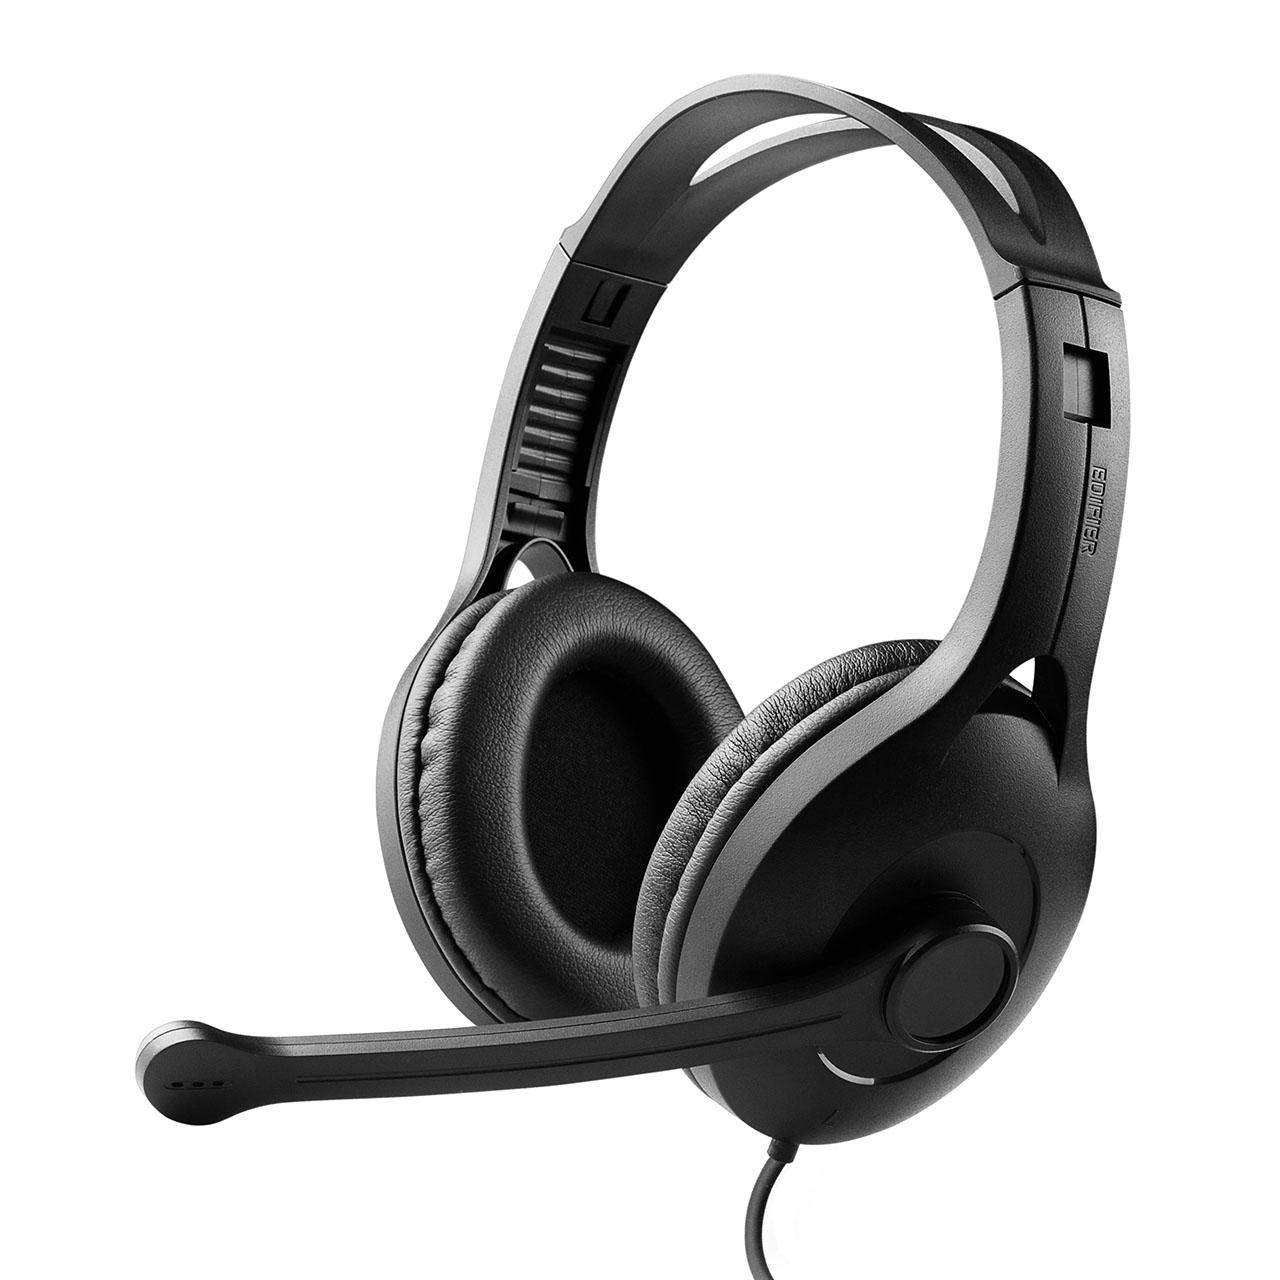 Edifier, K800, USB, Headset, with, Microphone, -, 120, Degree, Microphone, Rotation, Leather, Padded, Ear, Cups, Volume/Mute, Control,